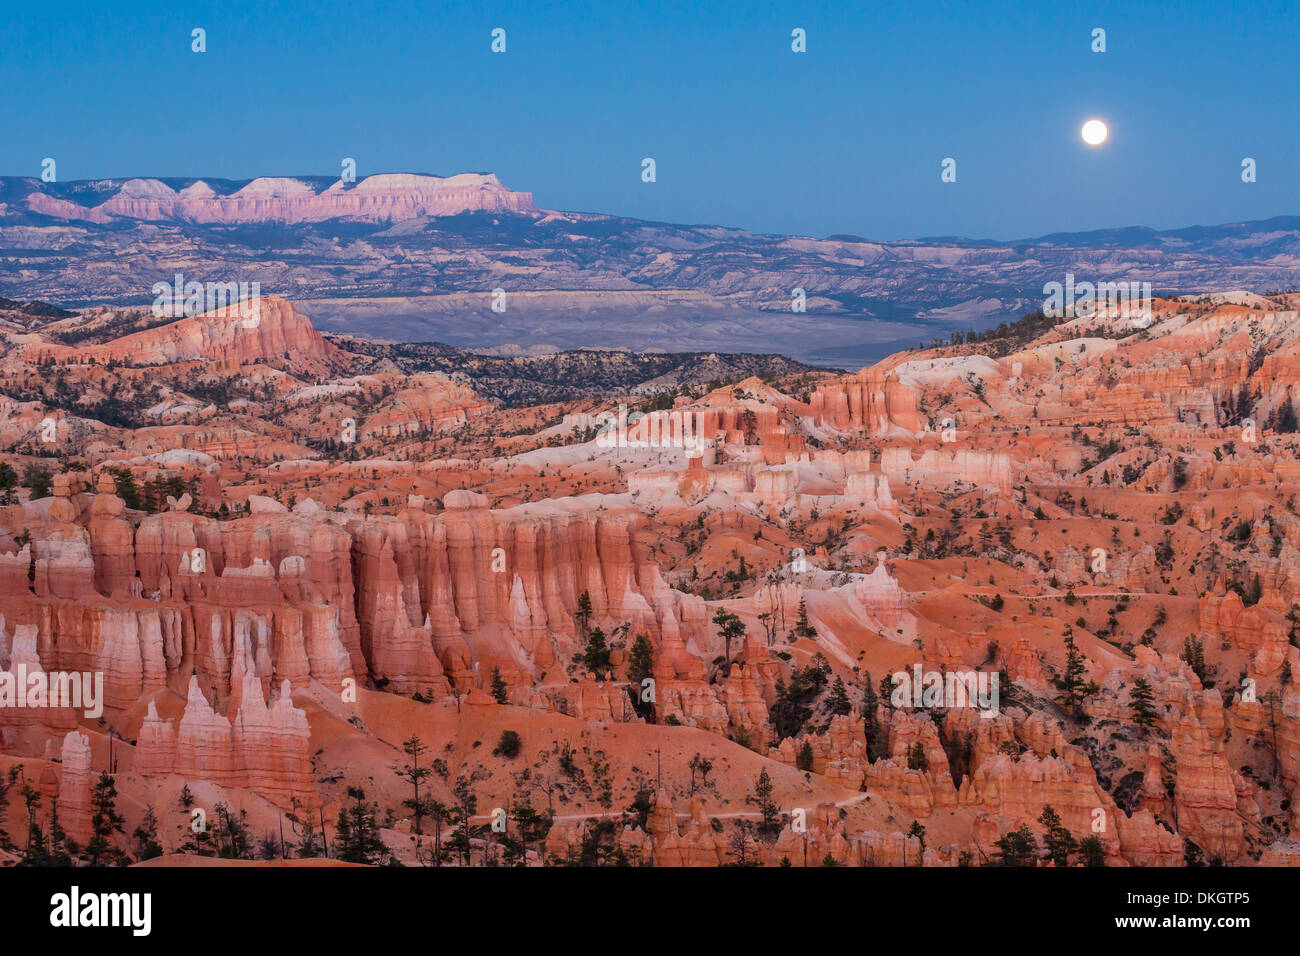 Moonrise over Bryce Canyon Amphitheater from Sunrise Point, Bryce Canyon National Park, Utah, USA - Stock Image